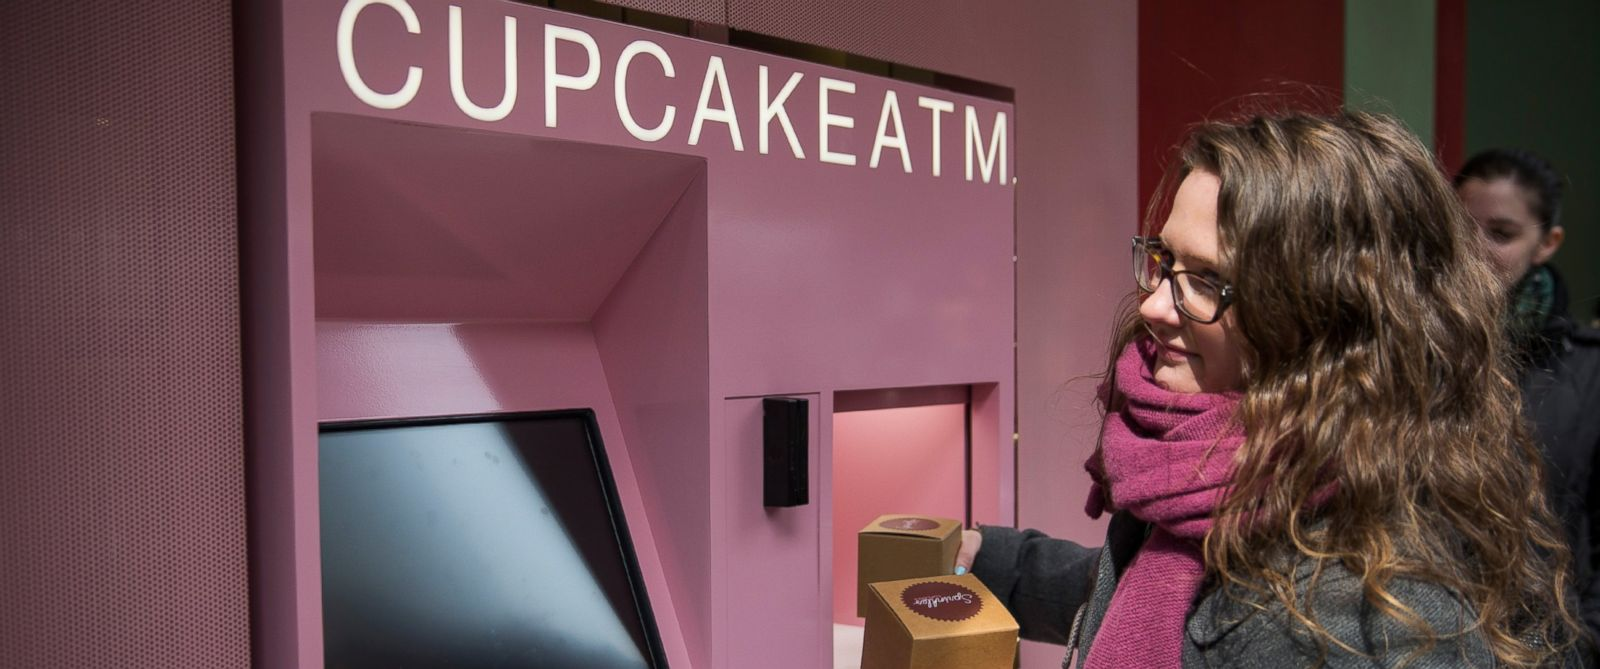 """PHOTO: A woman takes her order after using the """"Cupcake ATM"""" created by Sprinkles Cupcakes"""